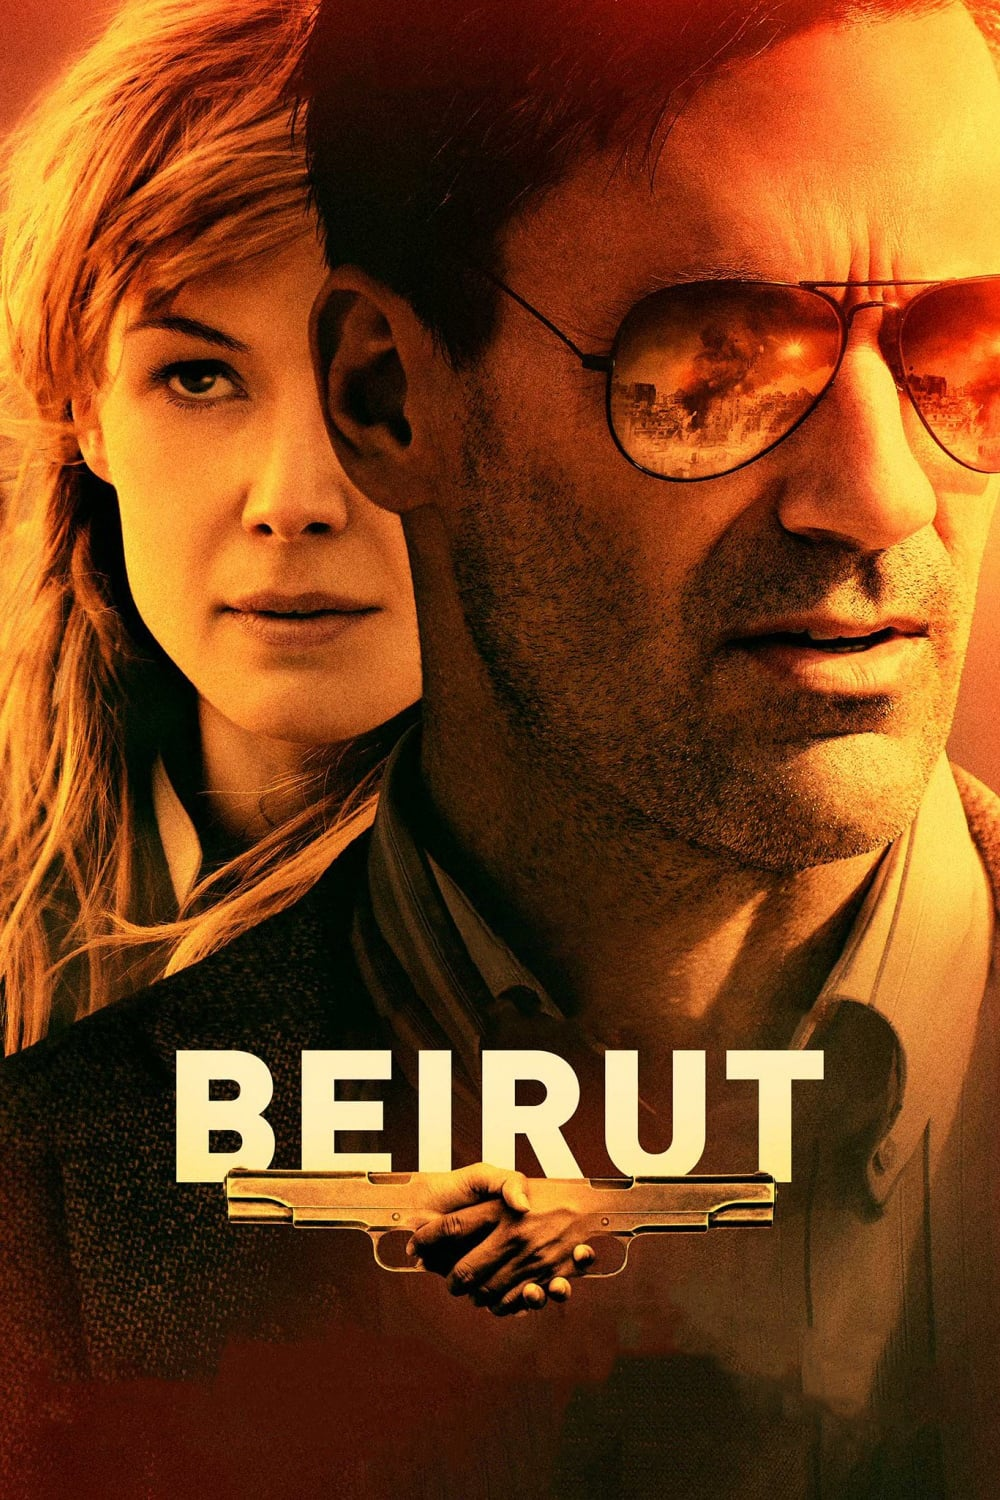 image for Beirut